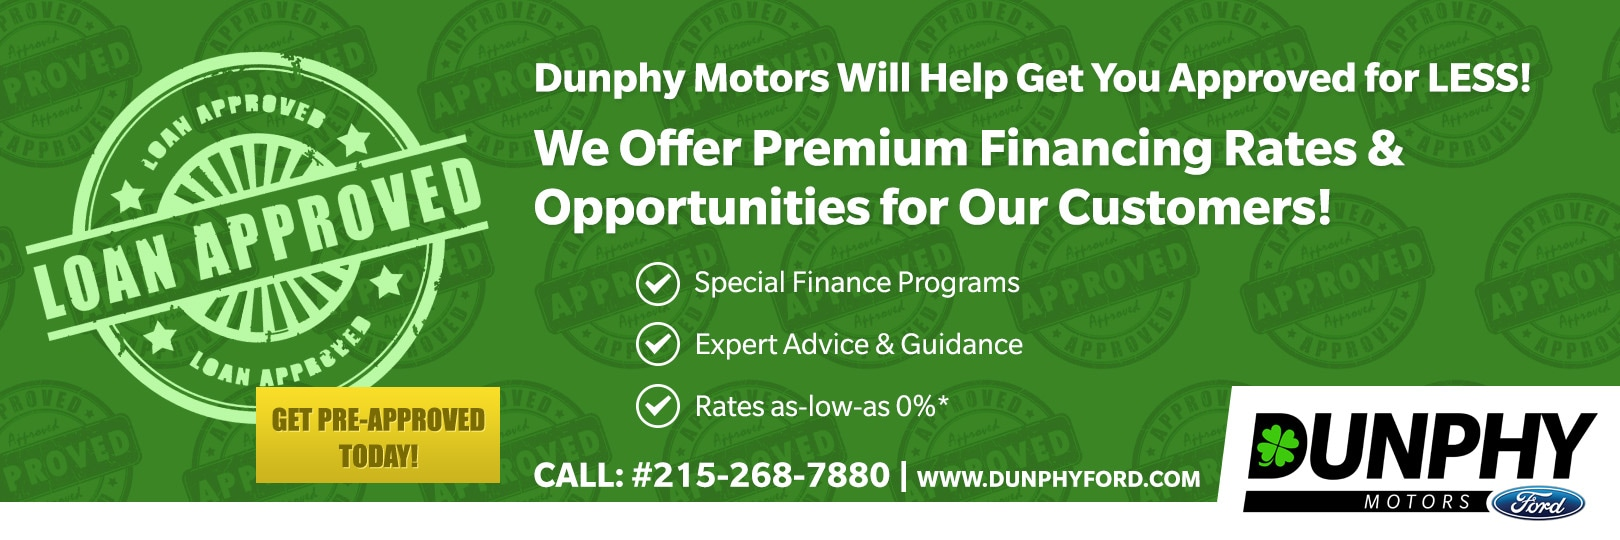 Dunphy Ford Financing Department